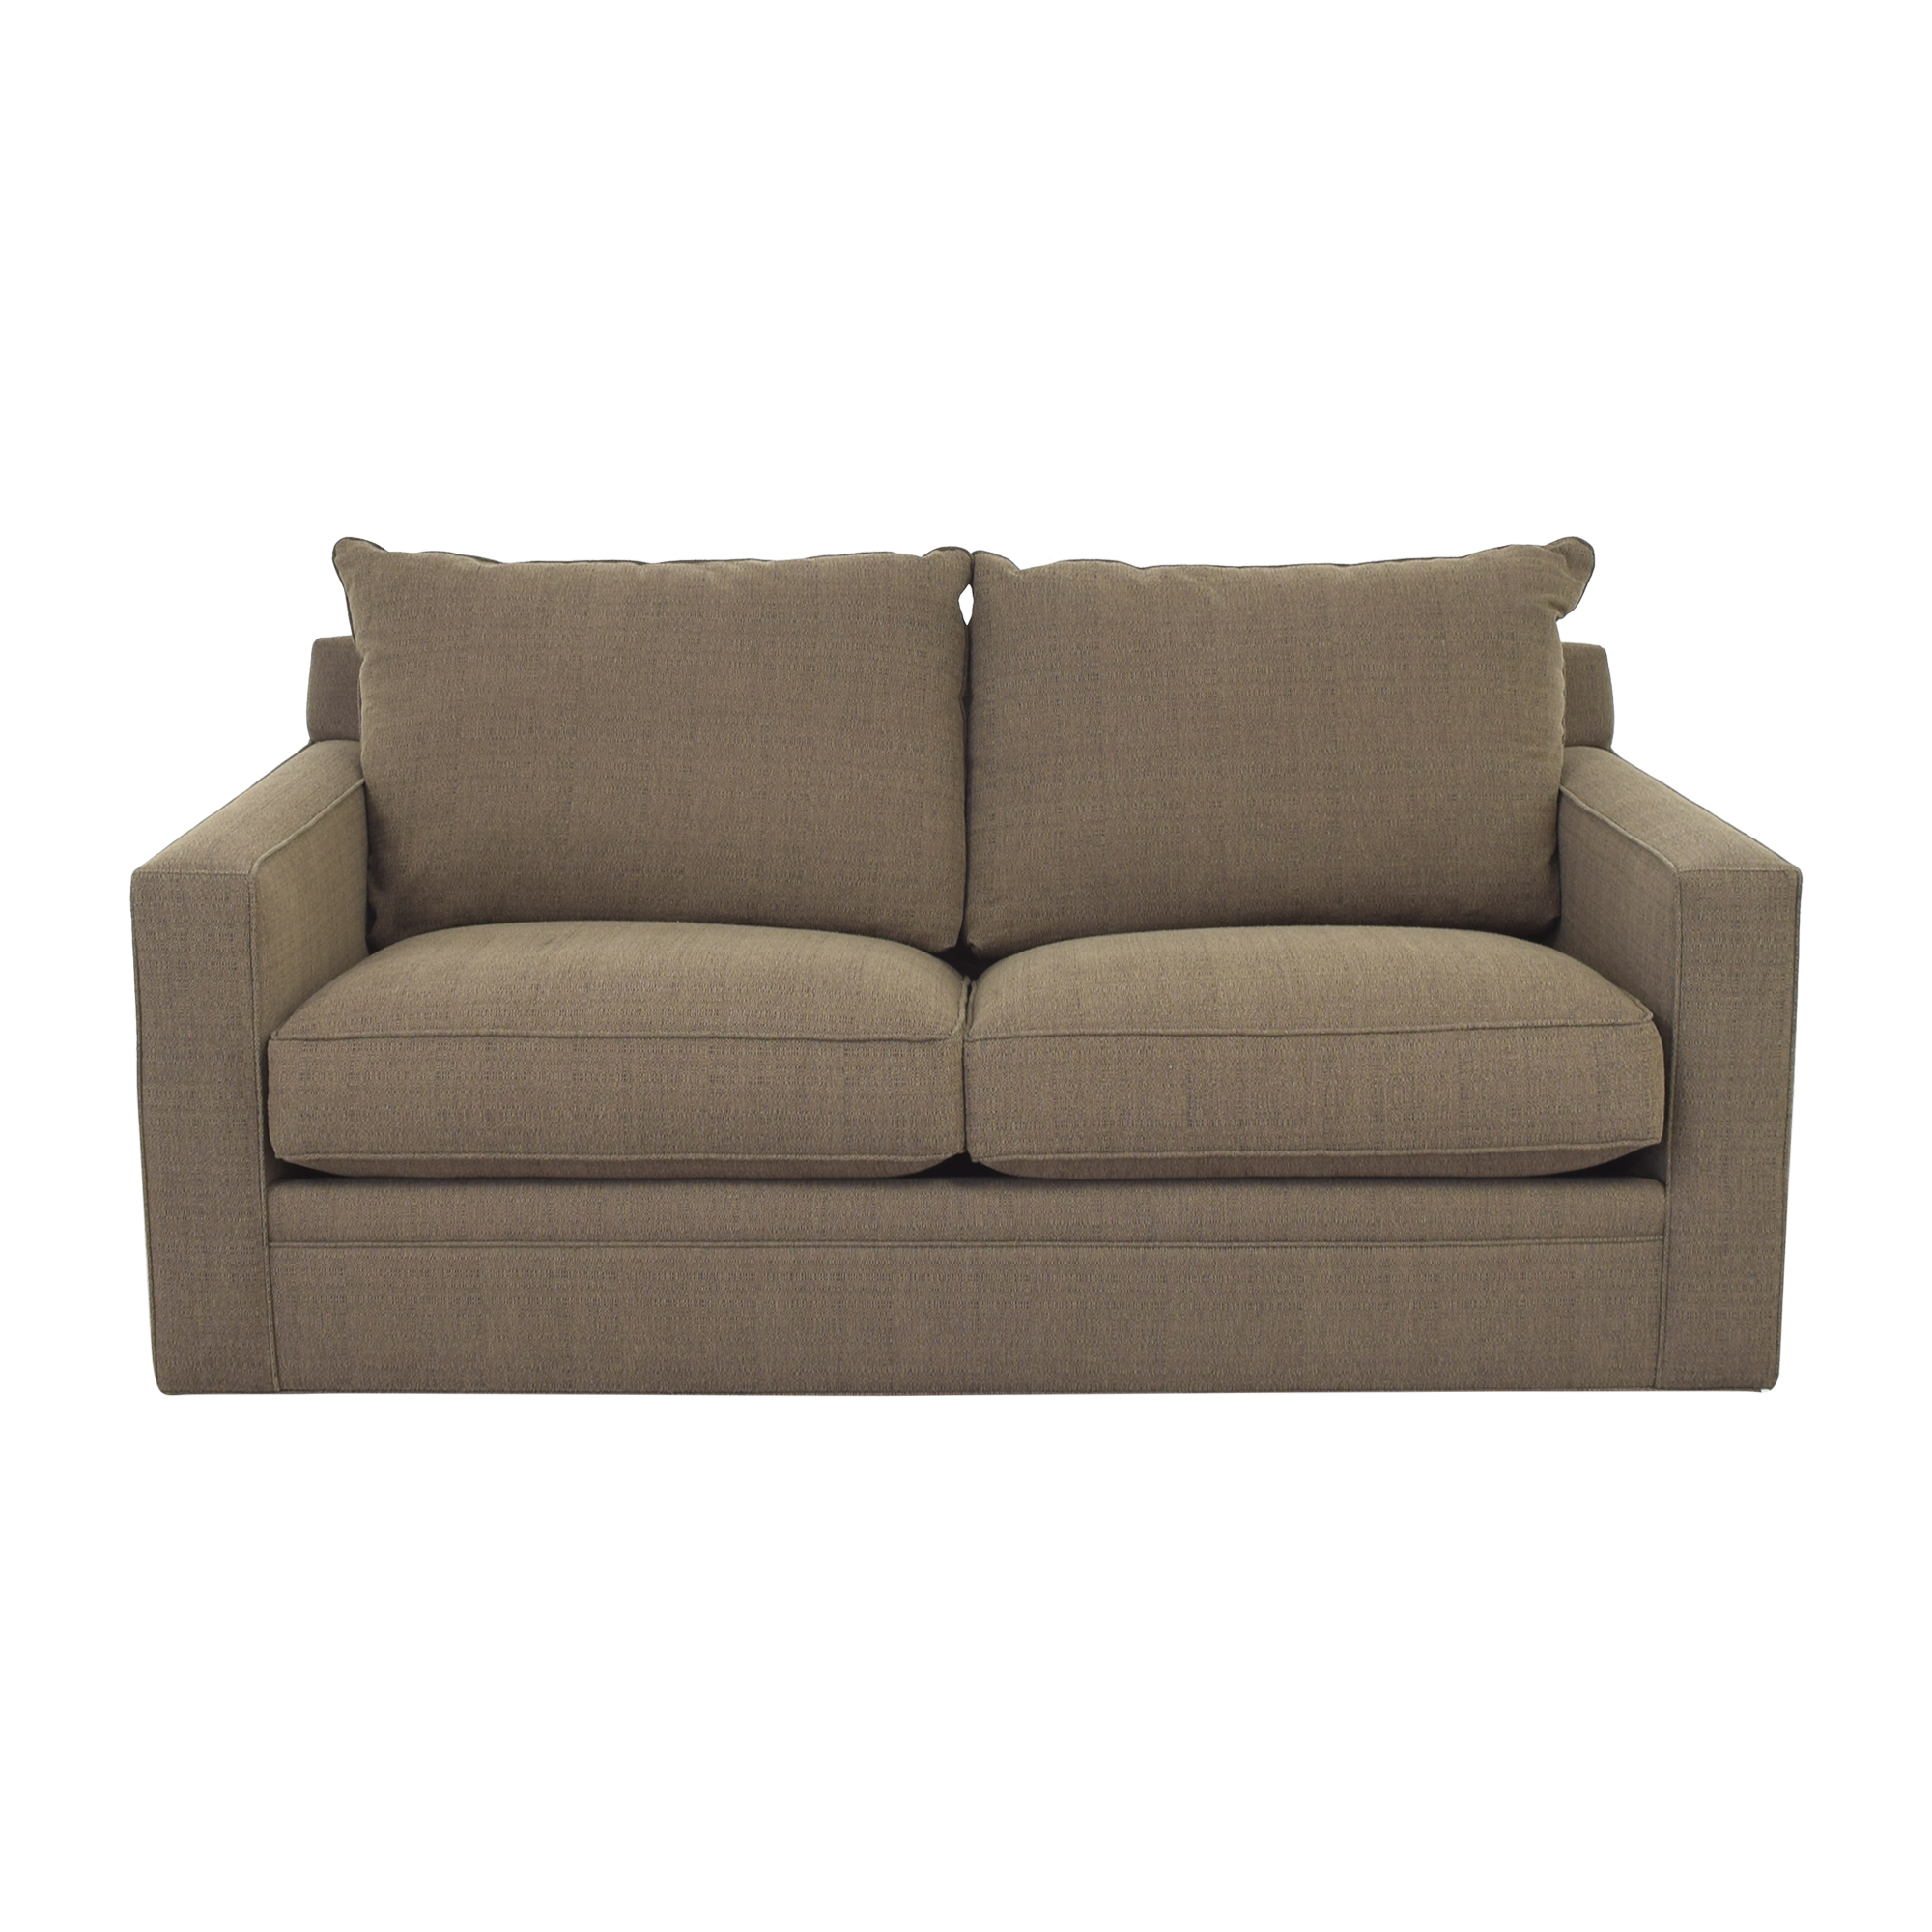 Room & Board Room & Board Orson Guest Select Sleeper Sofa Sofas